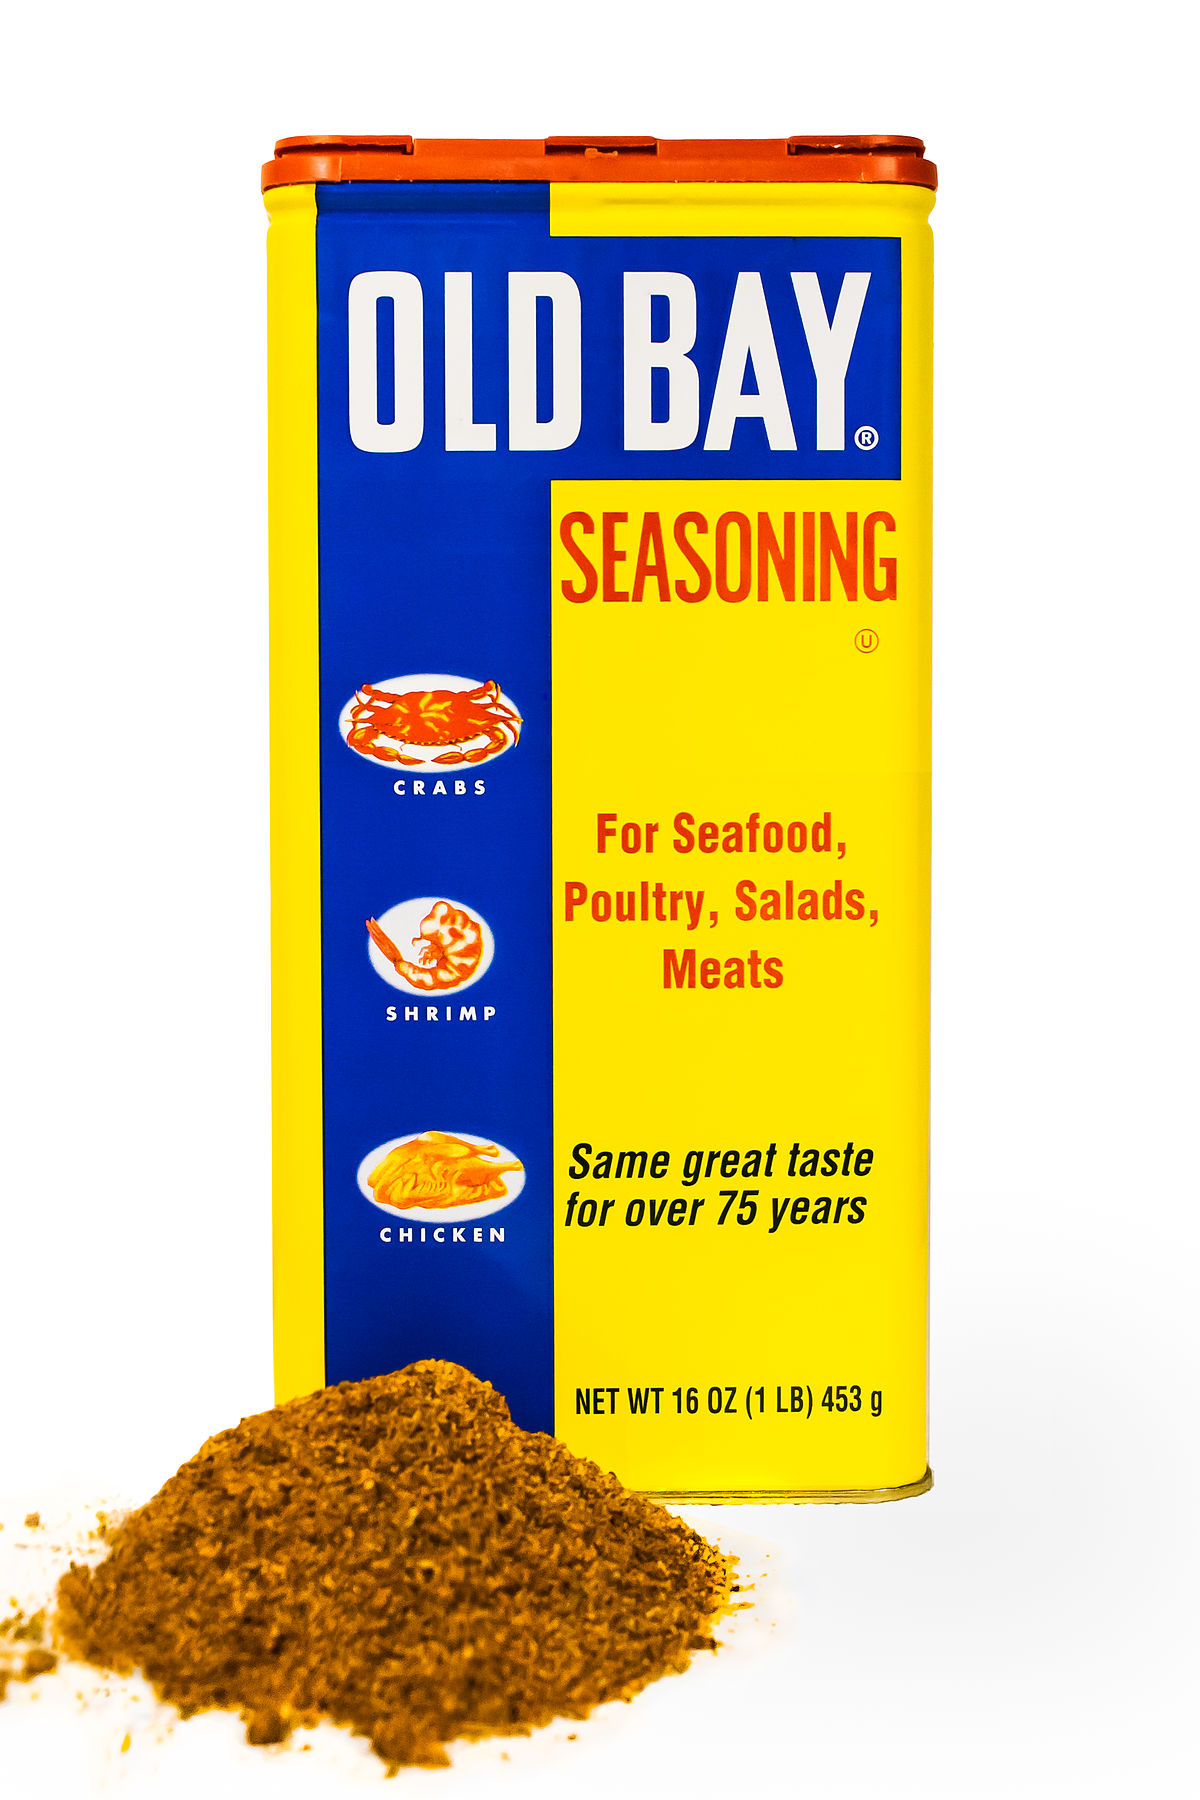 Old Bay Seasoning Wikipedia